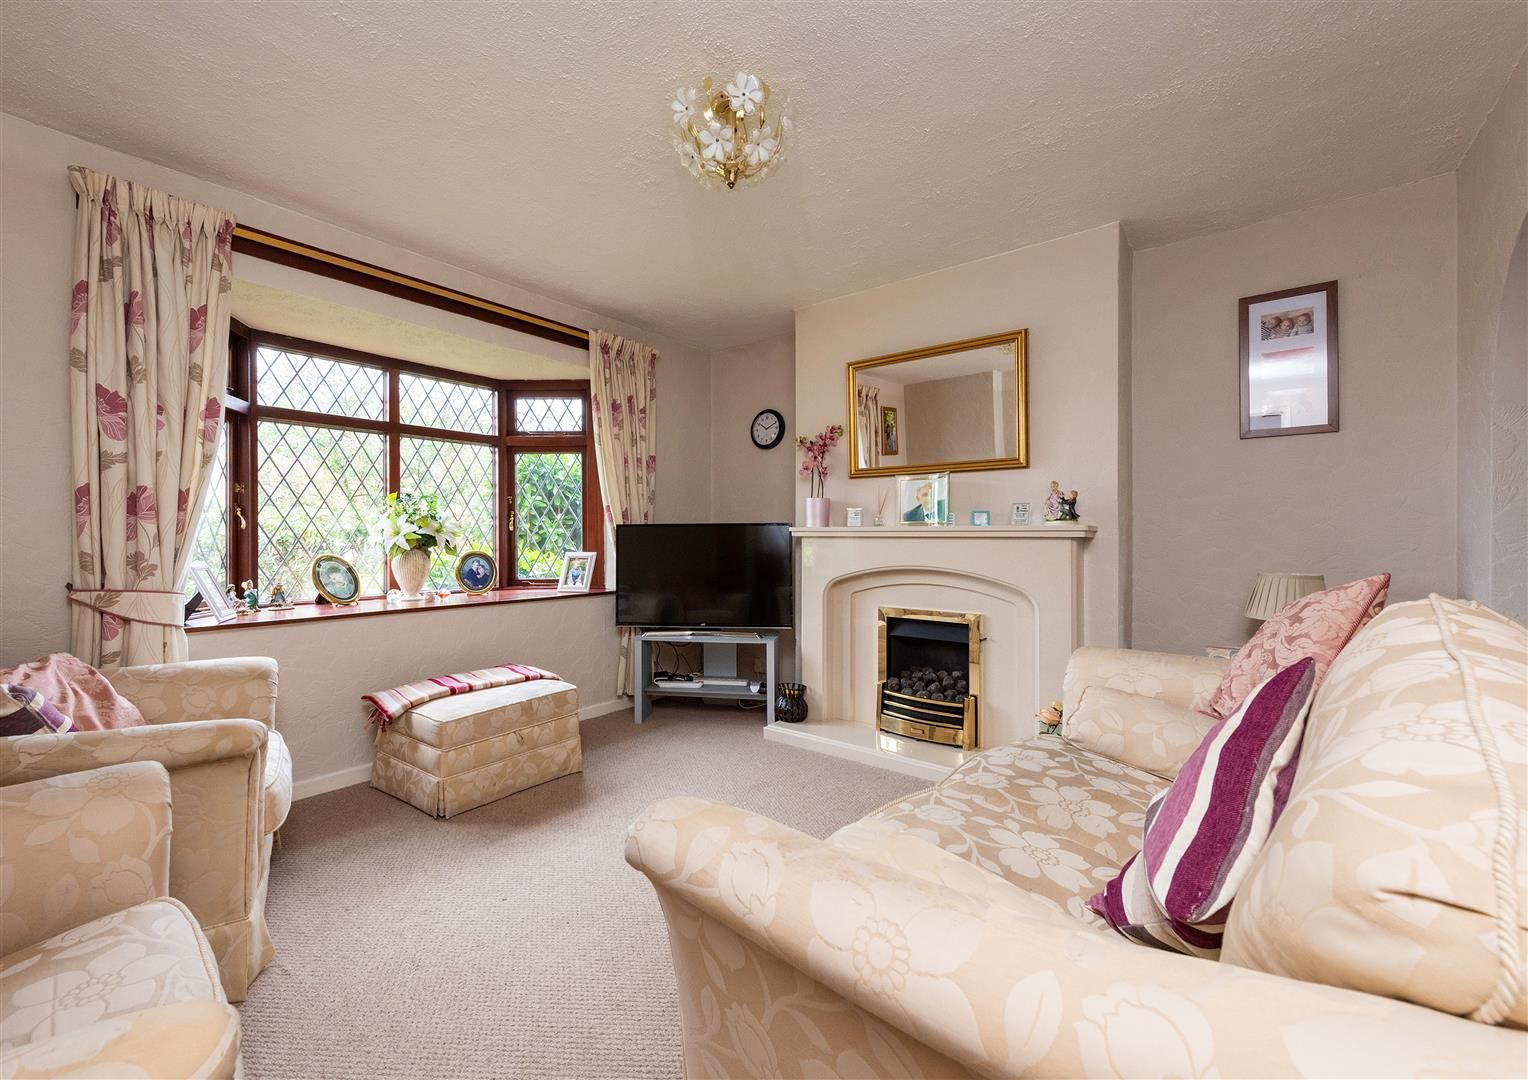 3 bed house for sale in Belbroughton 2